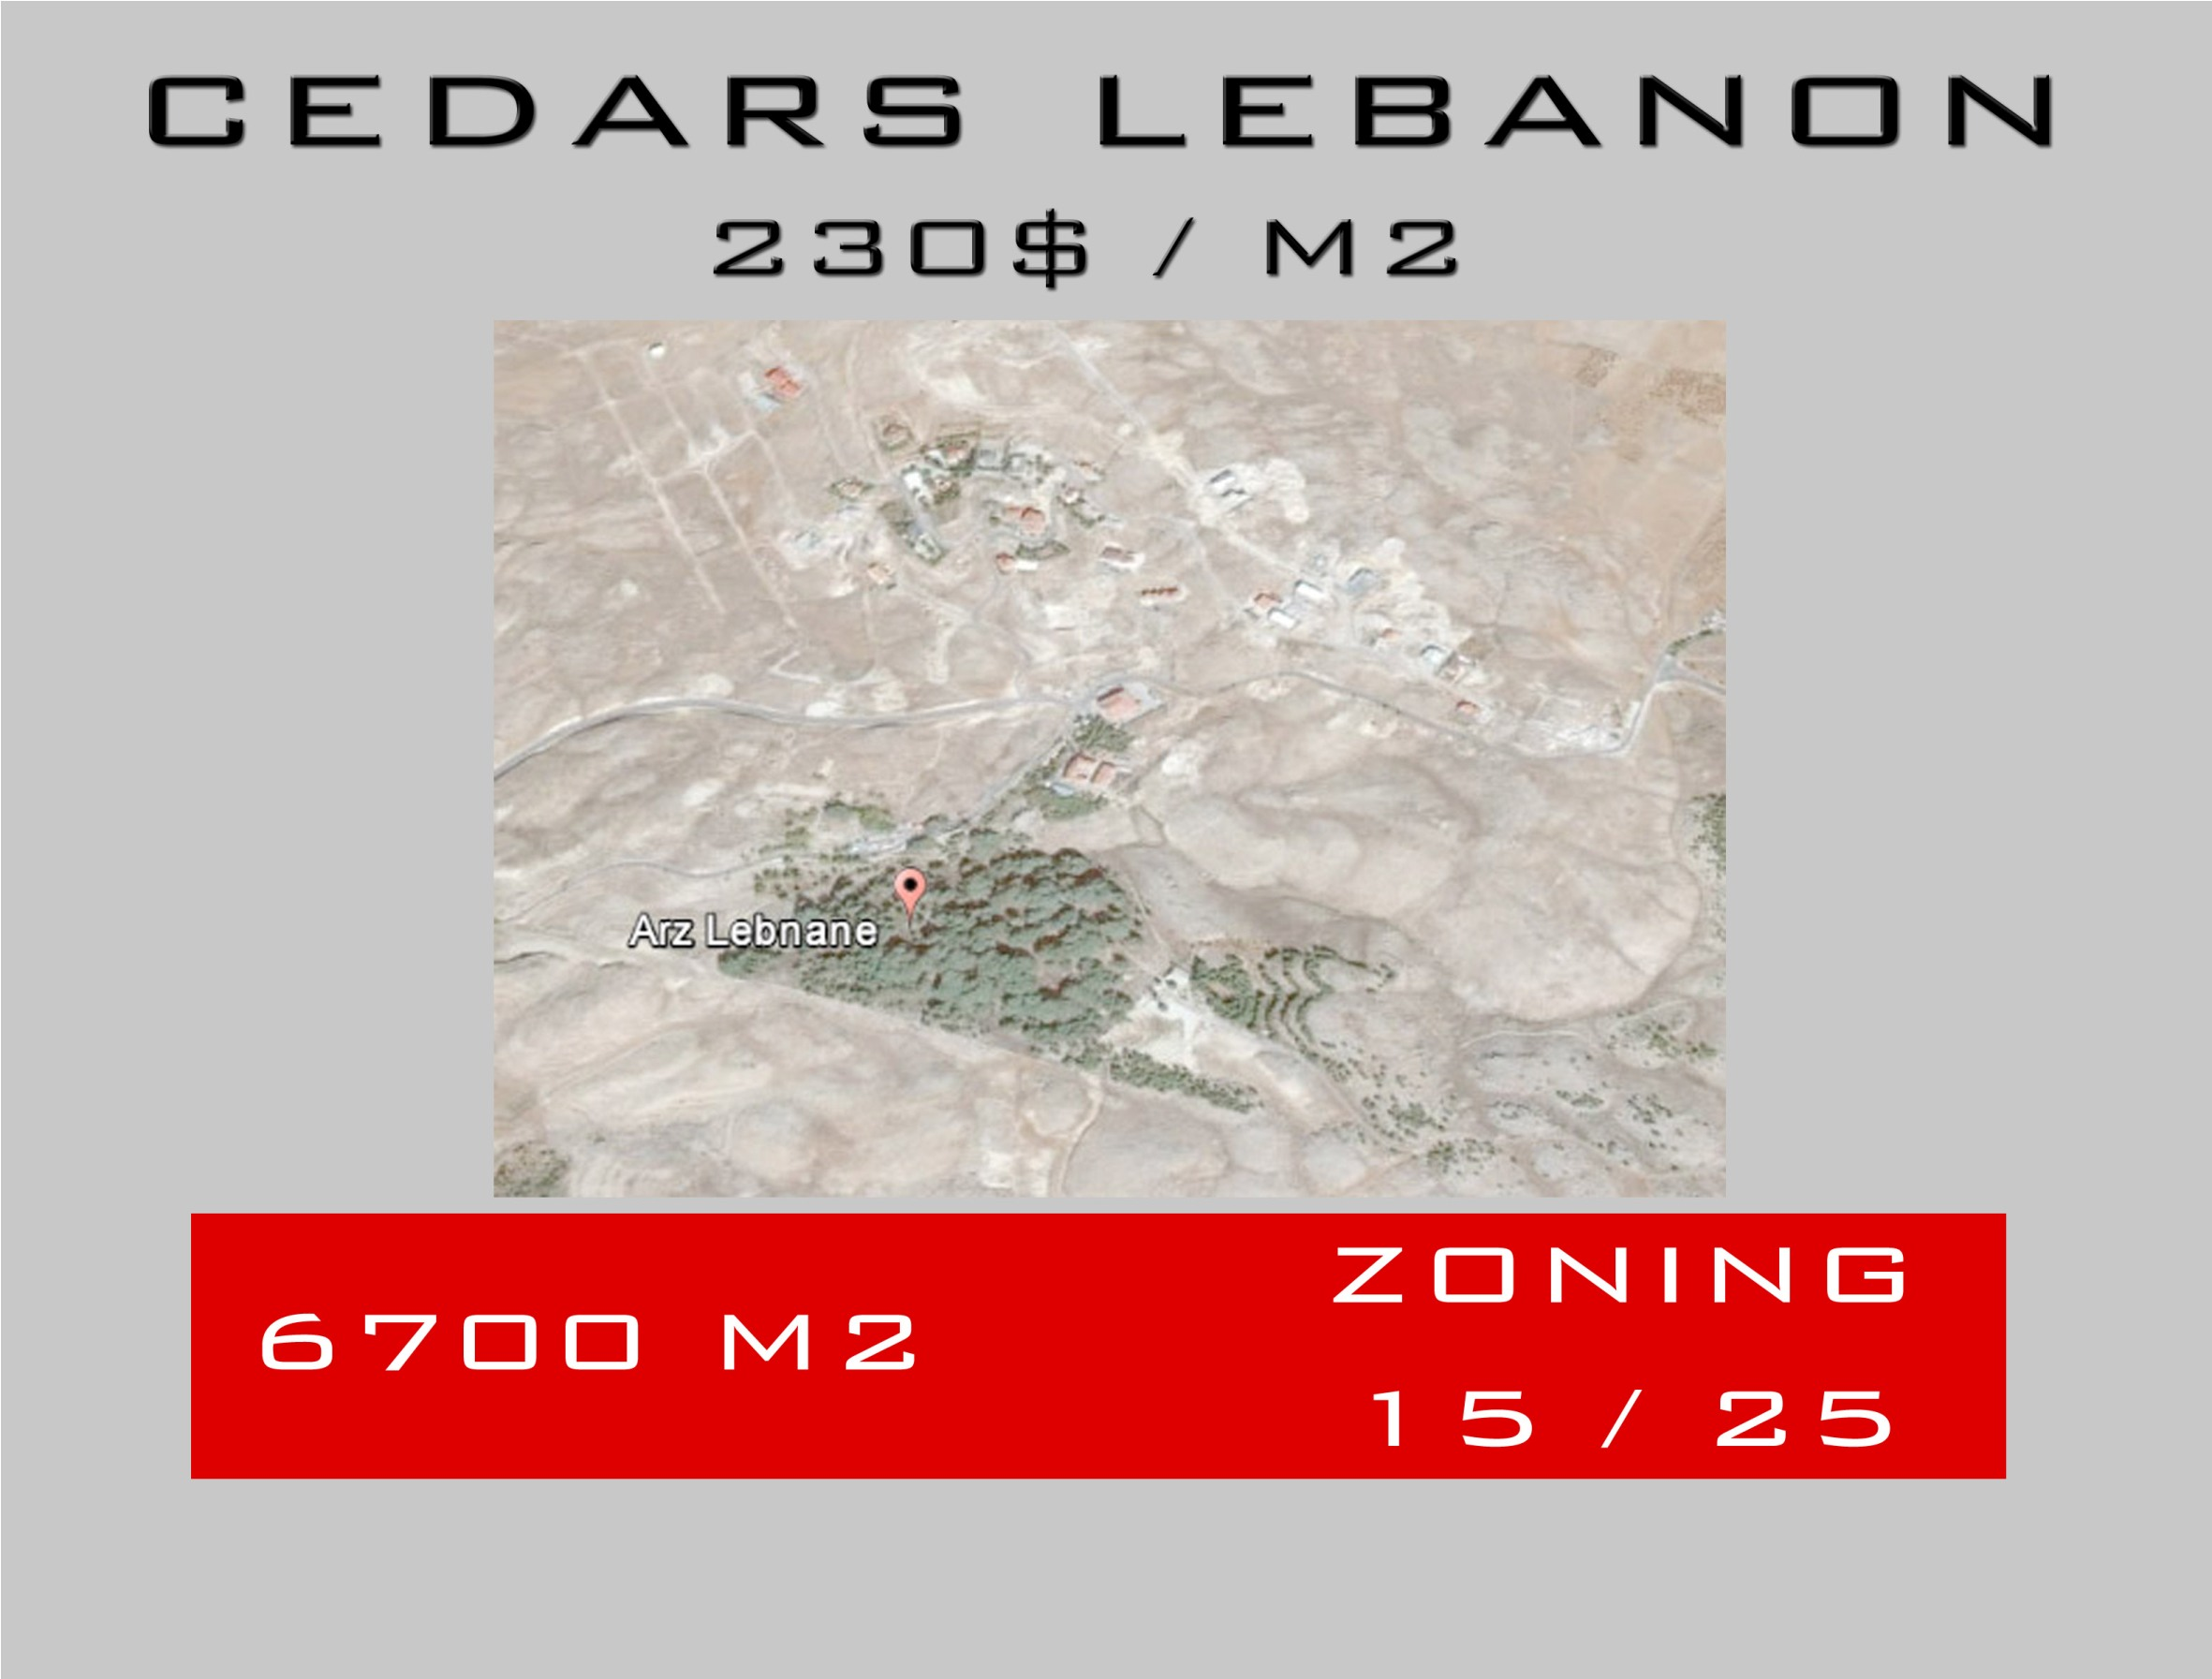 Land for sale in north lebanon - Real estate in lebanon - Buy and sell properties in lebanon